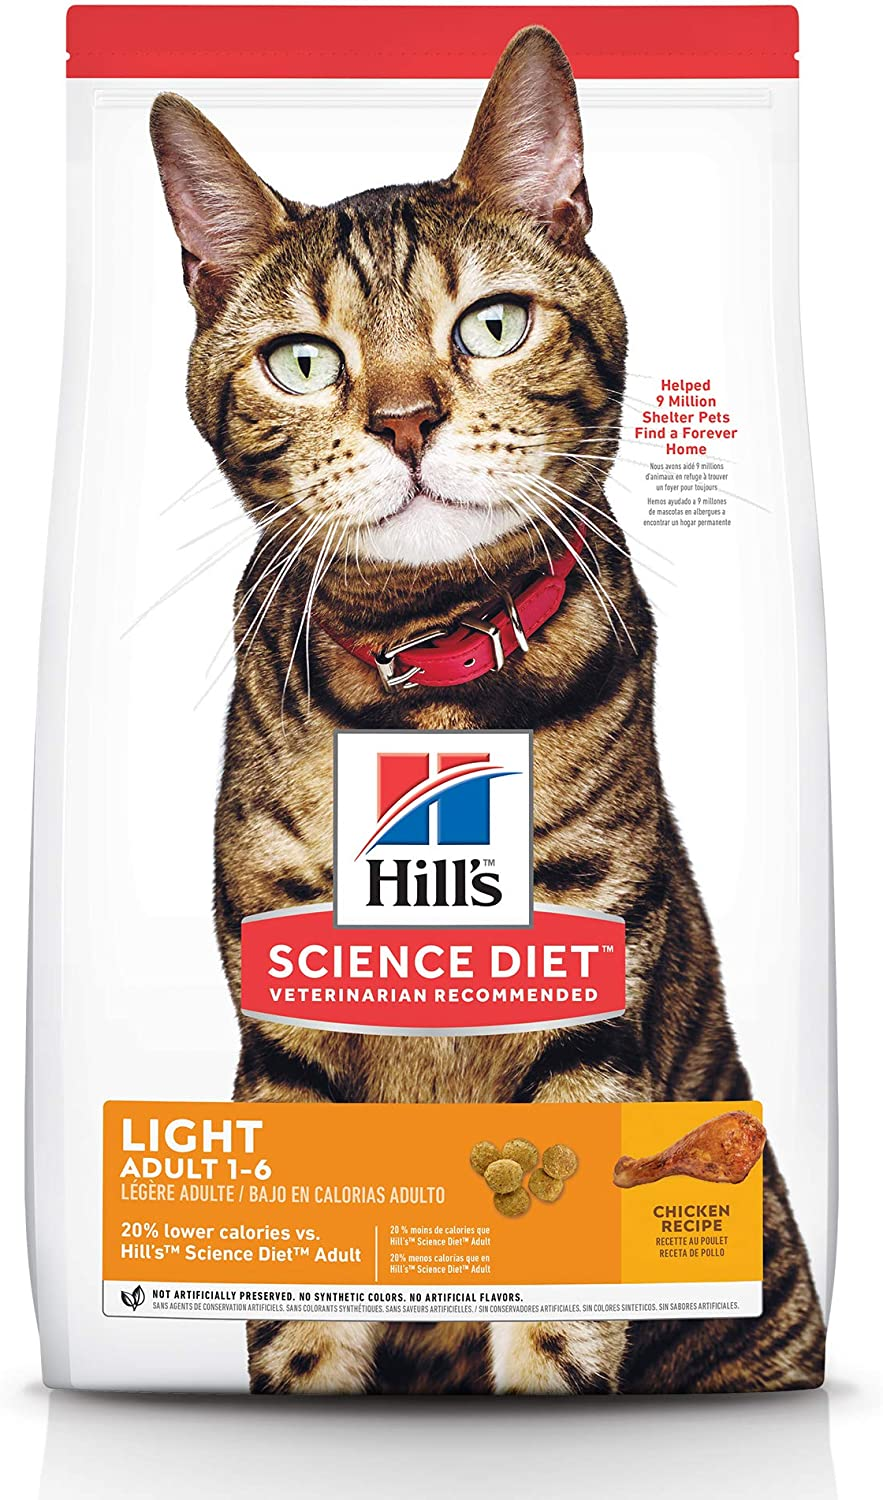 Hill's Science Diet Superlatite Dry Cat Food Fixed price for sale Weigh Adult for Light Healthy